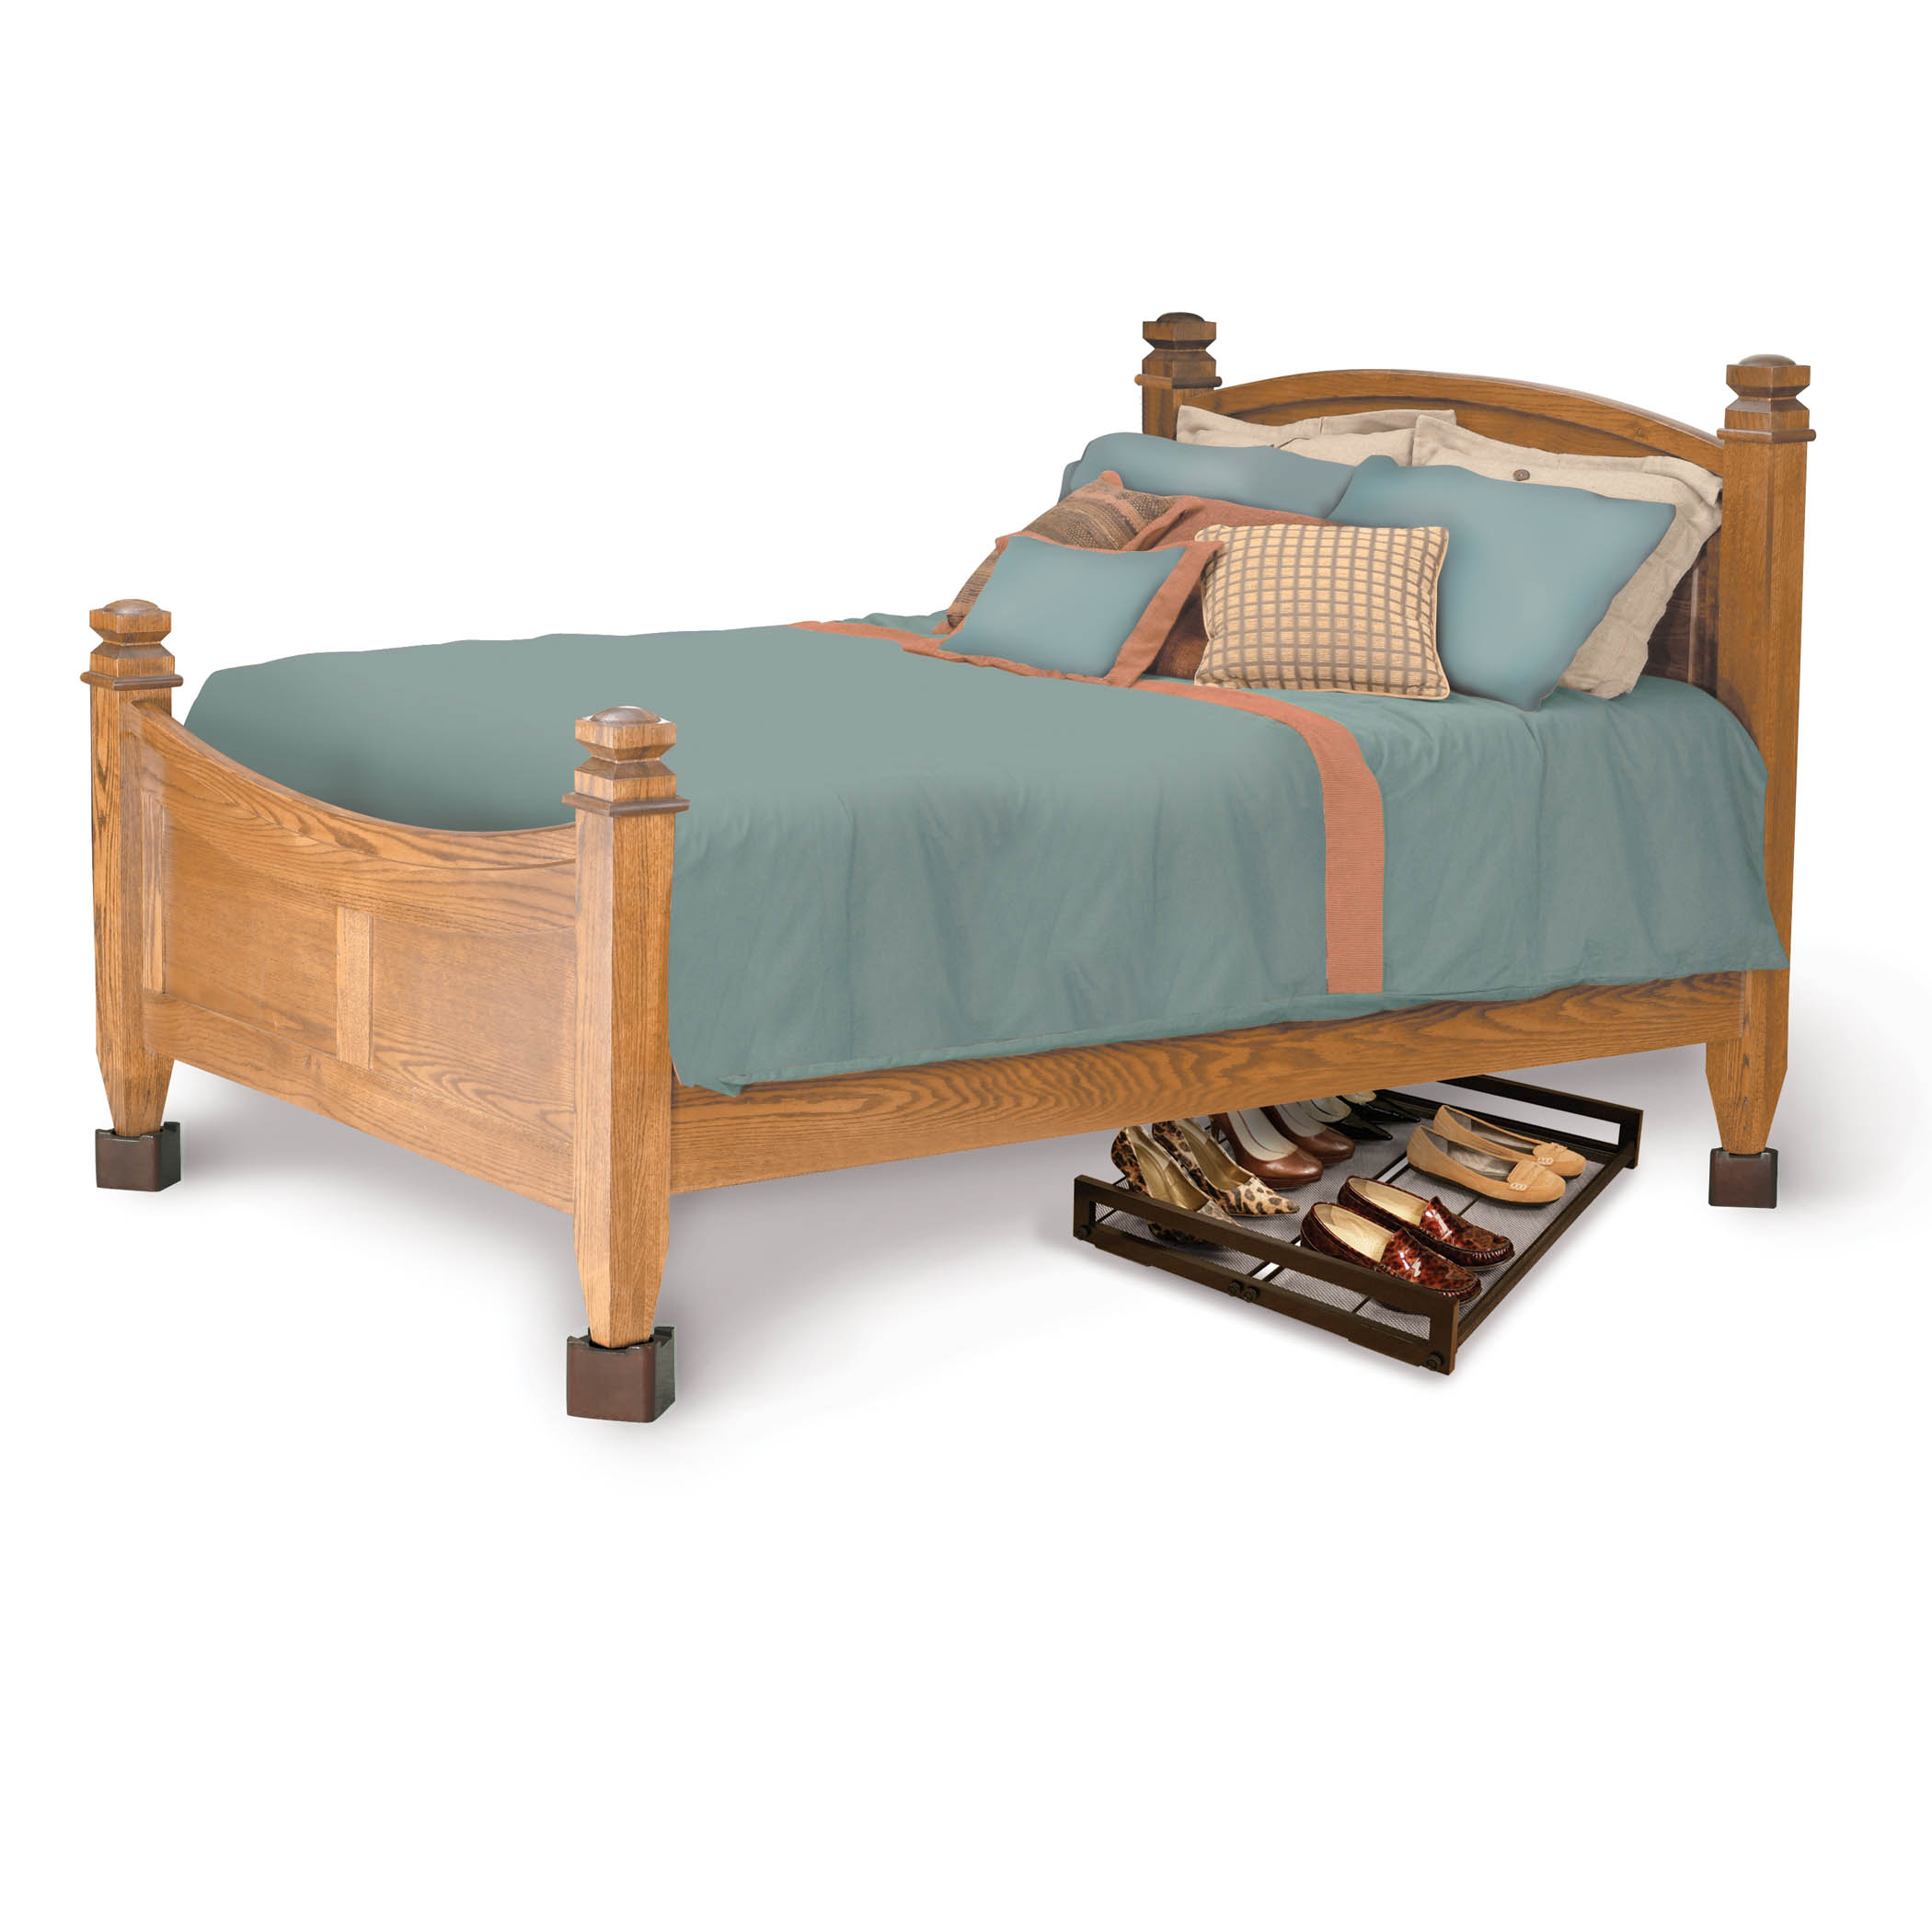 Wooden Bed Risers ~ Walterdrake wooden bed risers ebay